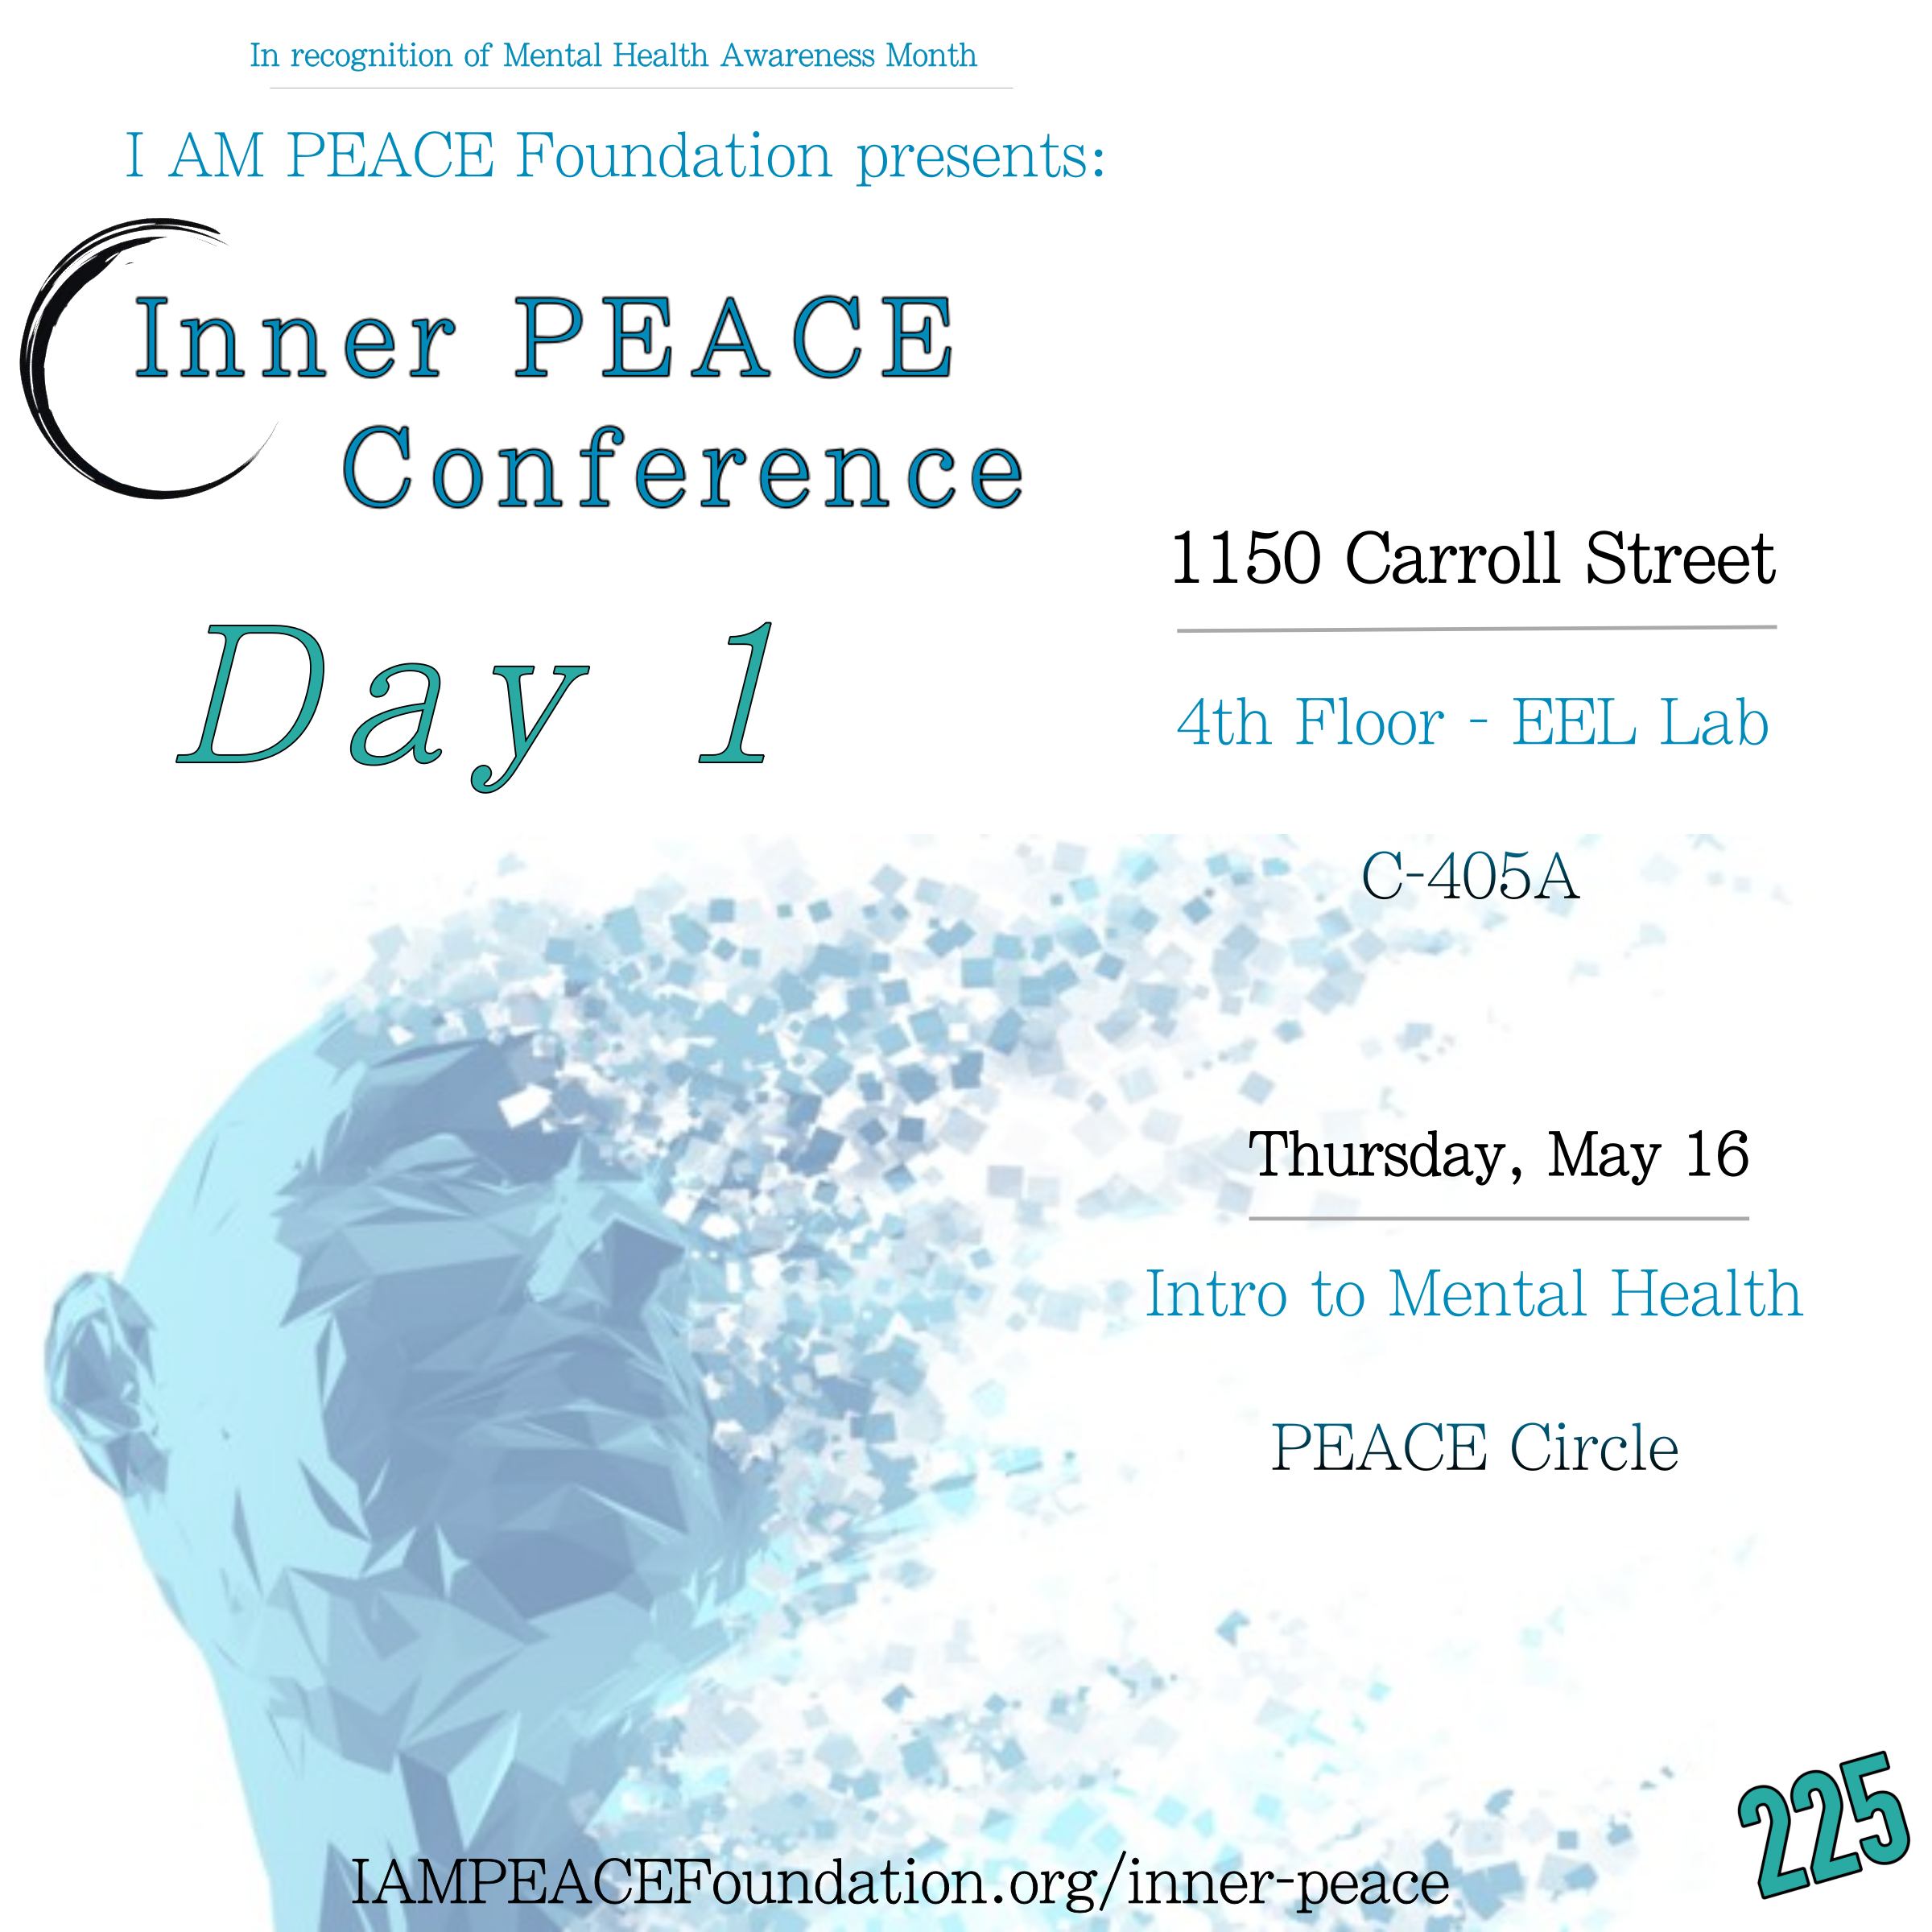 Inner PEACE DAY 1 conference flyer - PNG.png